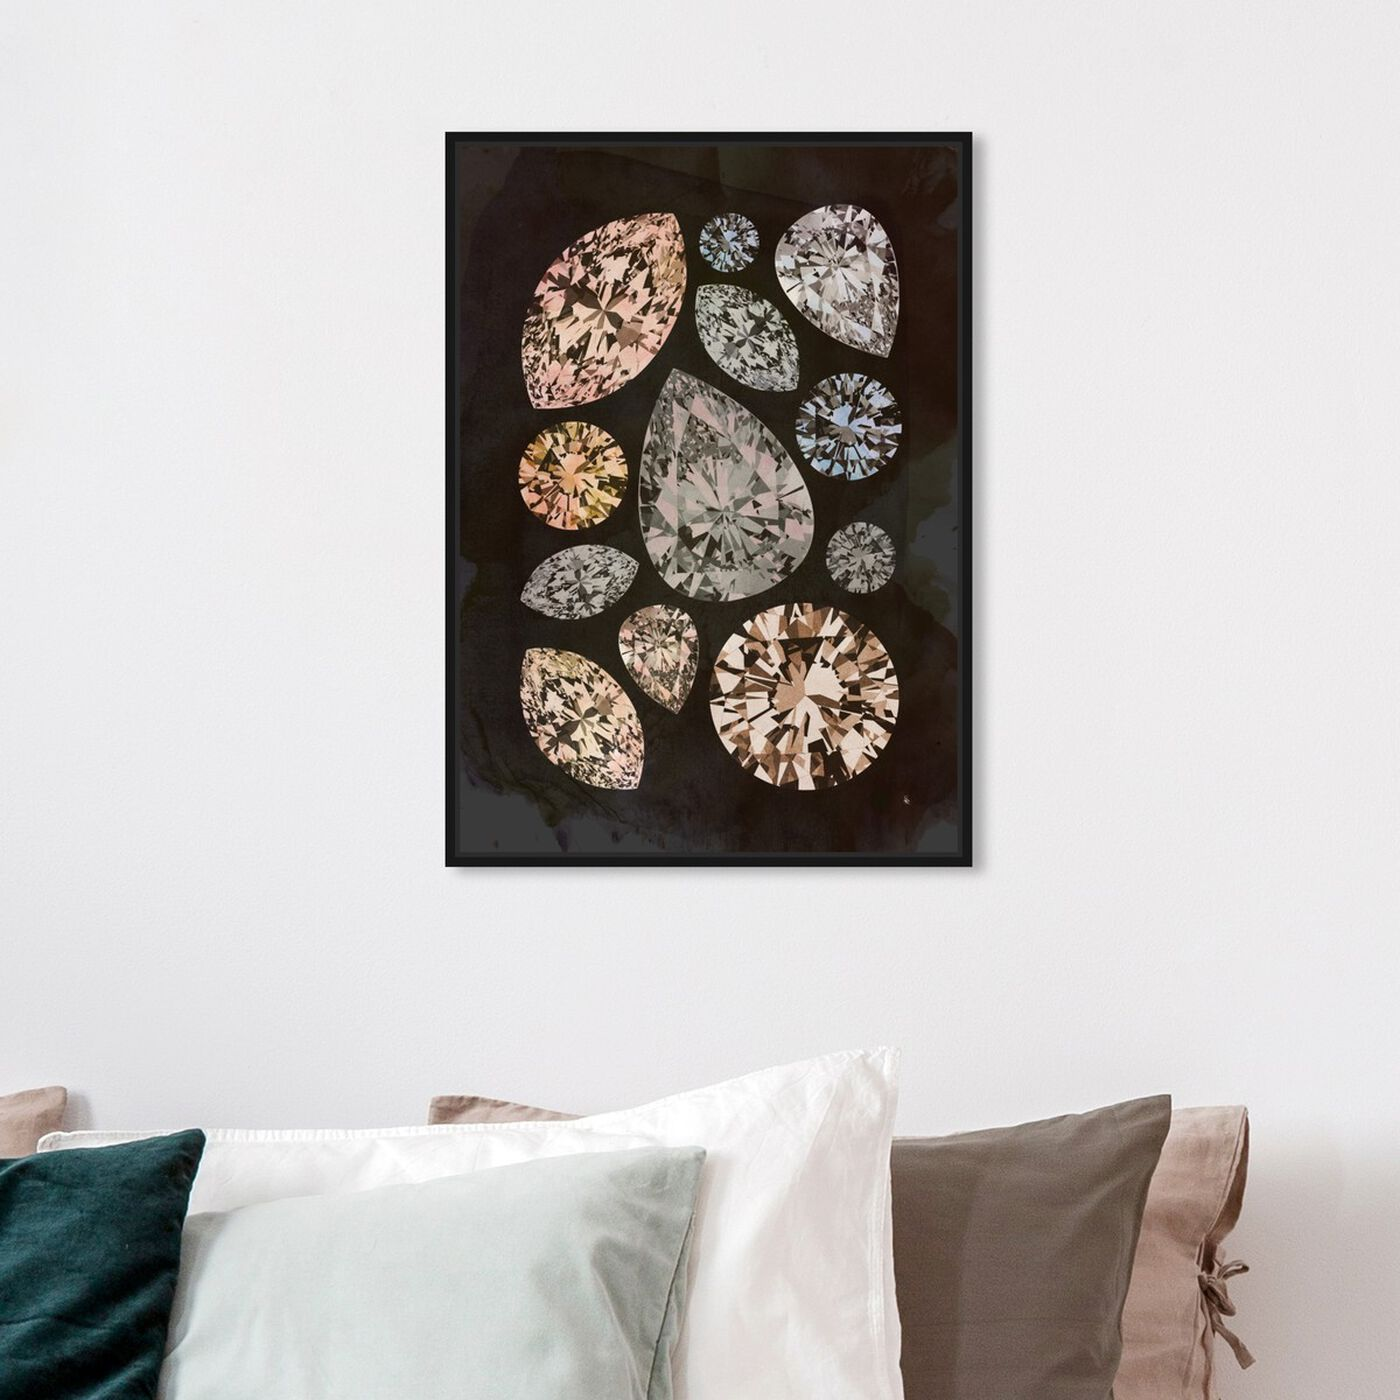 Hanging view of Autumn Stones featuring abstract and crystals art.